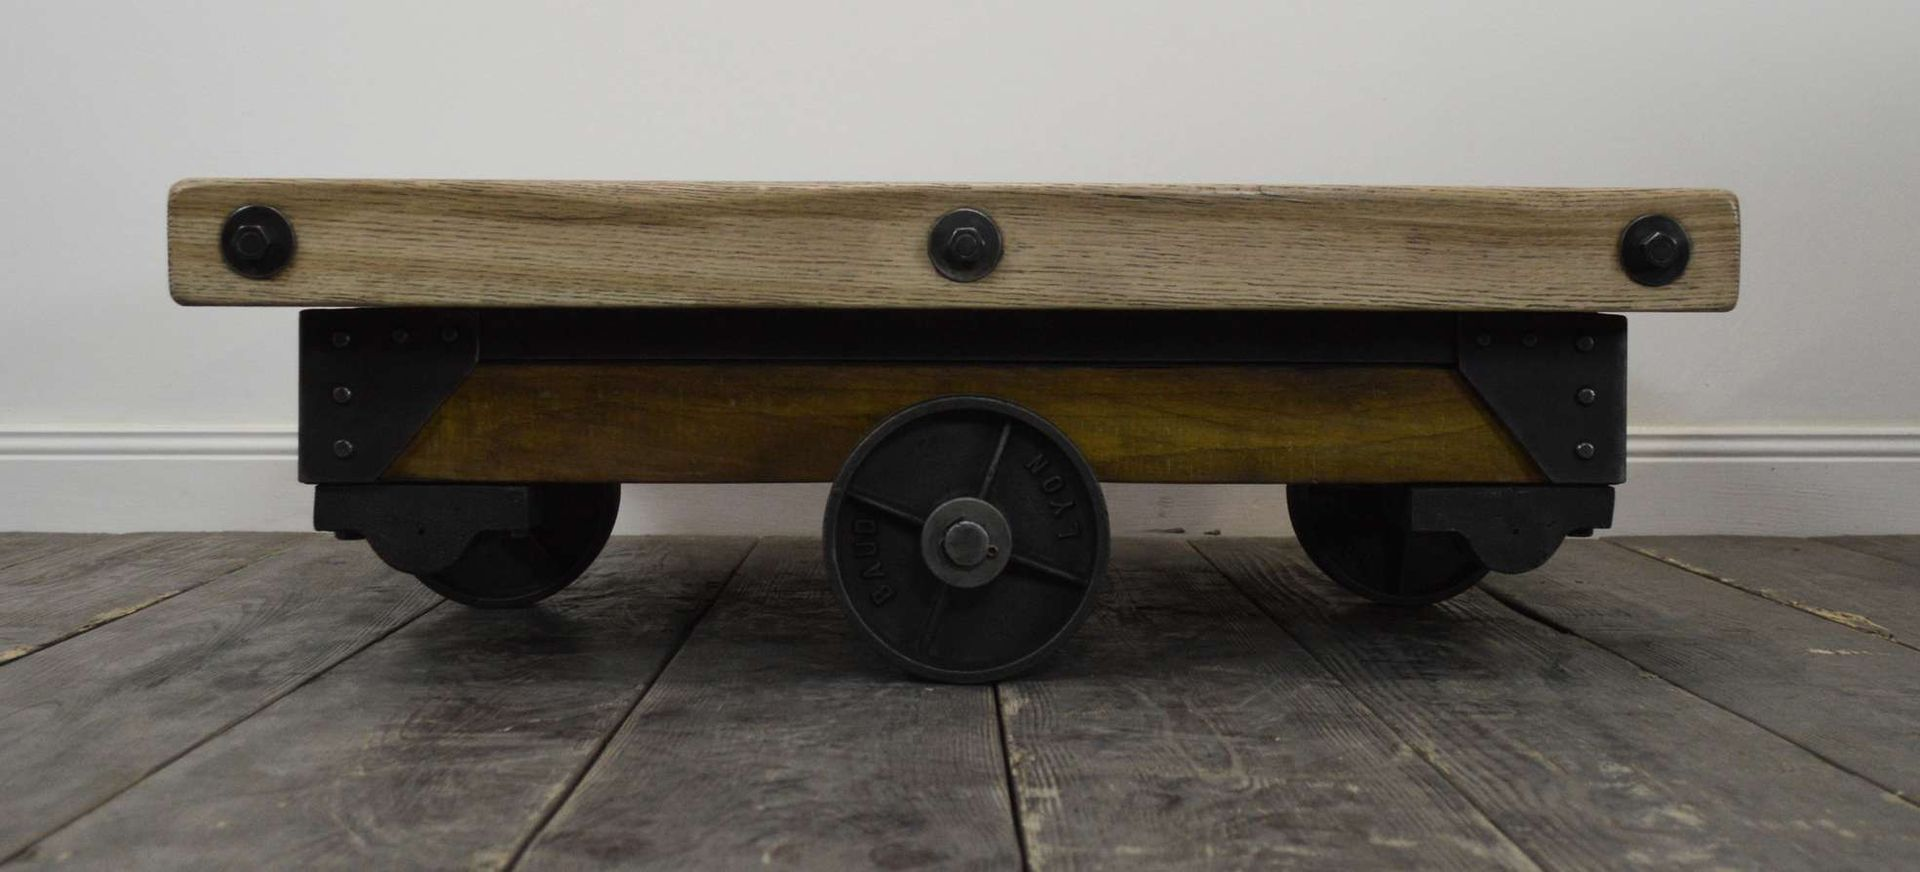 Table basse industrielle rivet e en bois et en m tal en for Table basse industrielle metal et bois